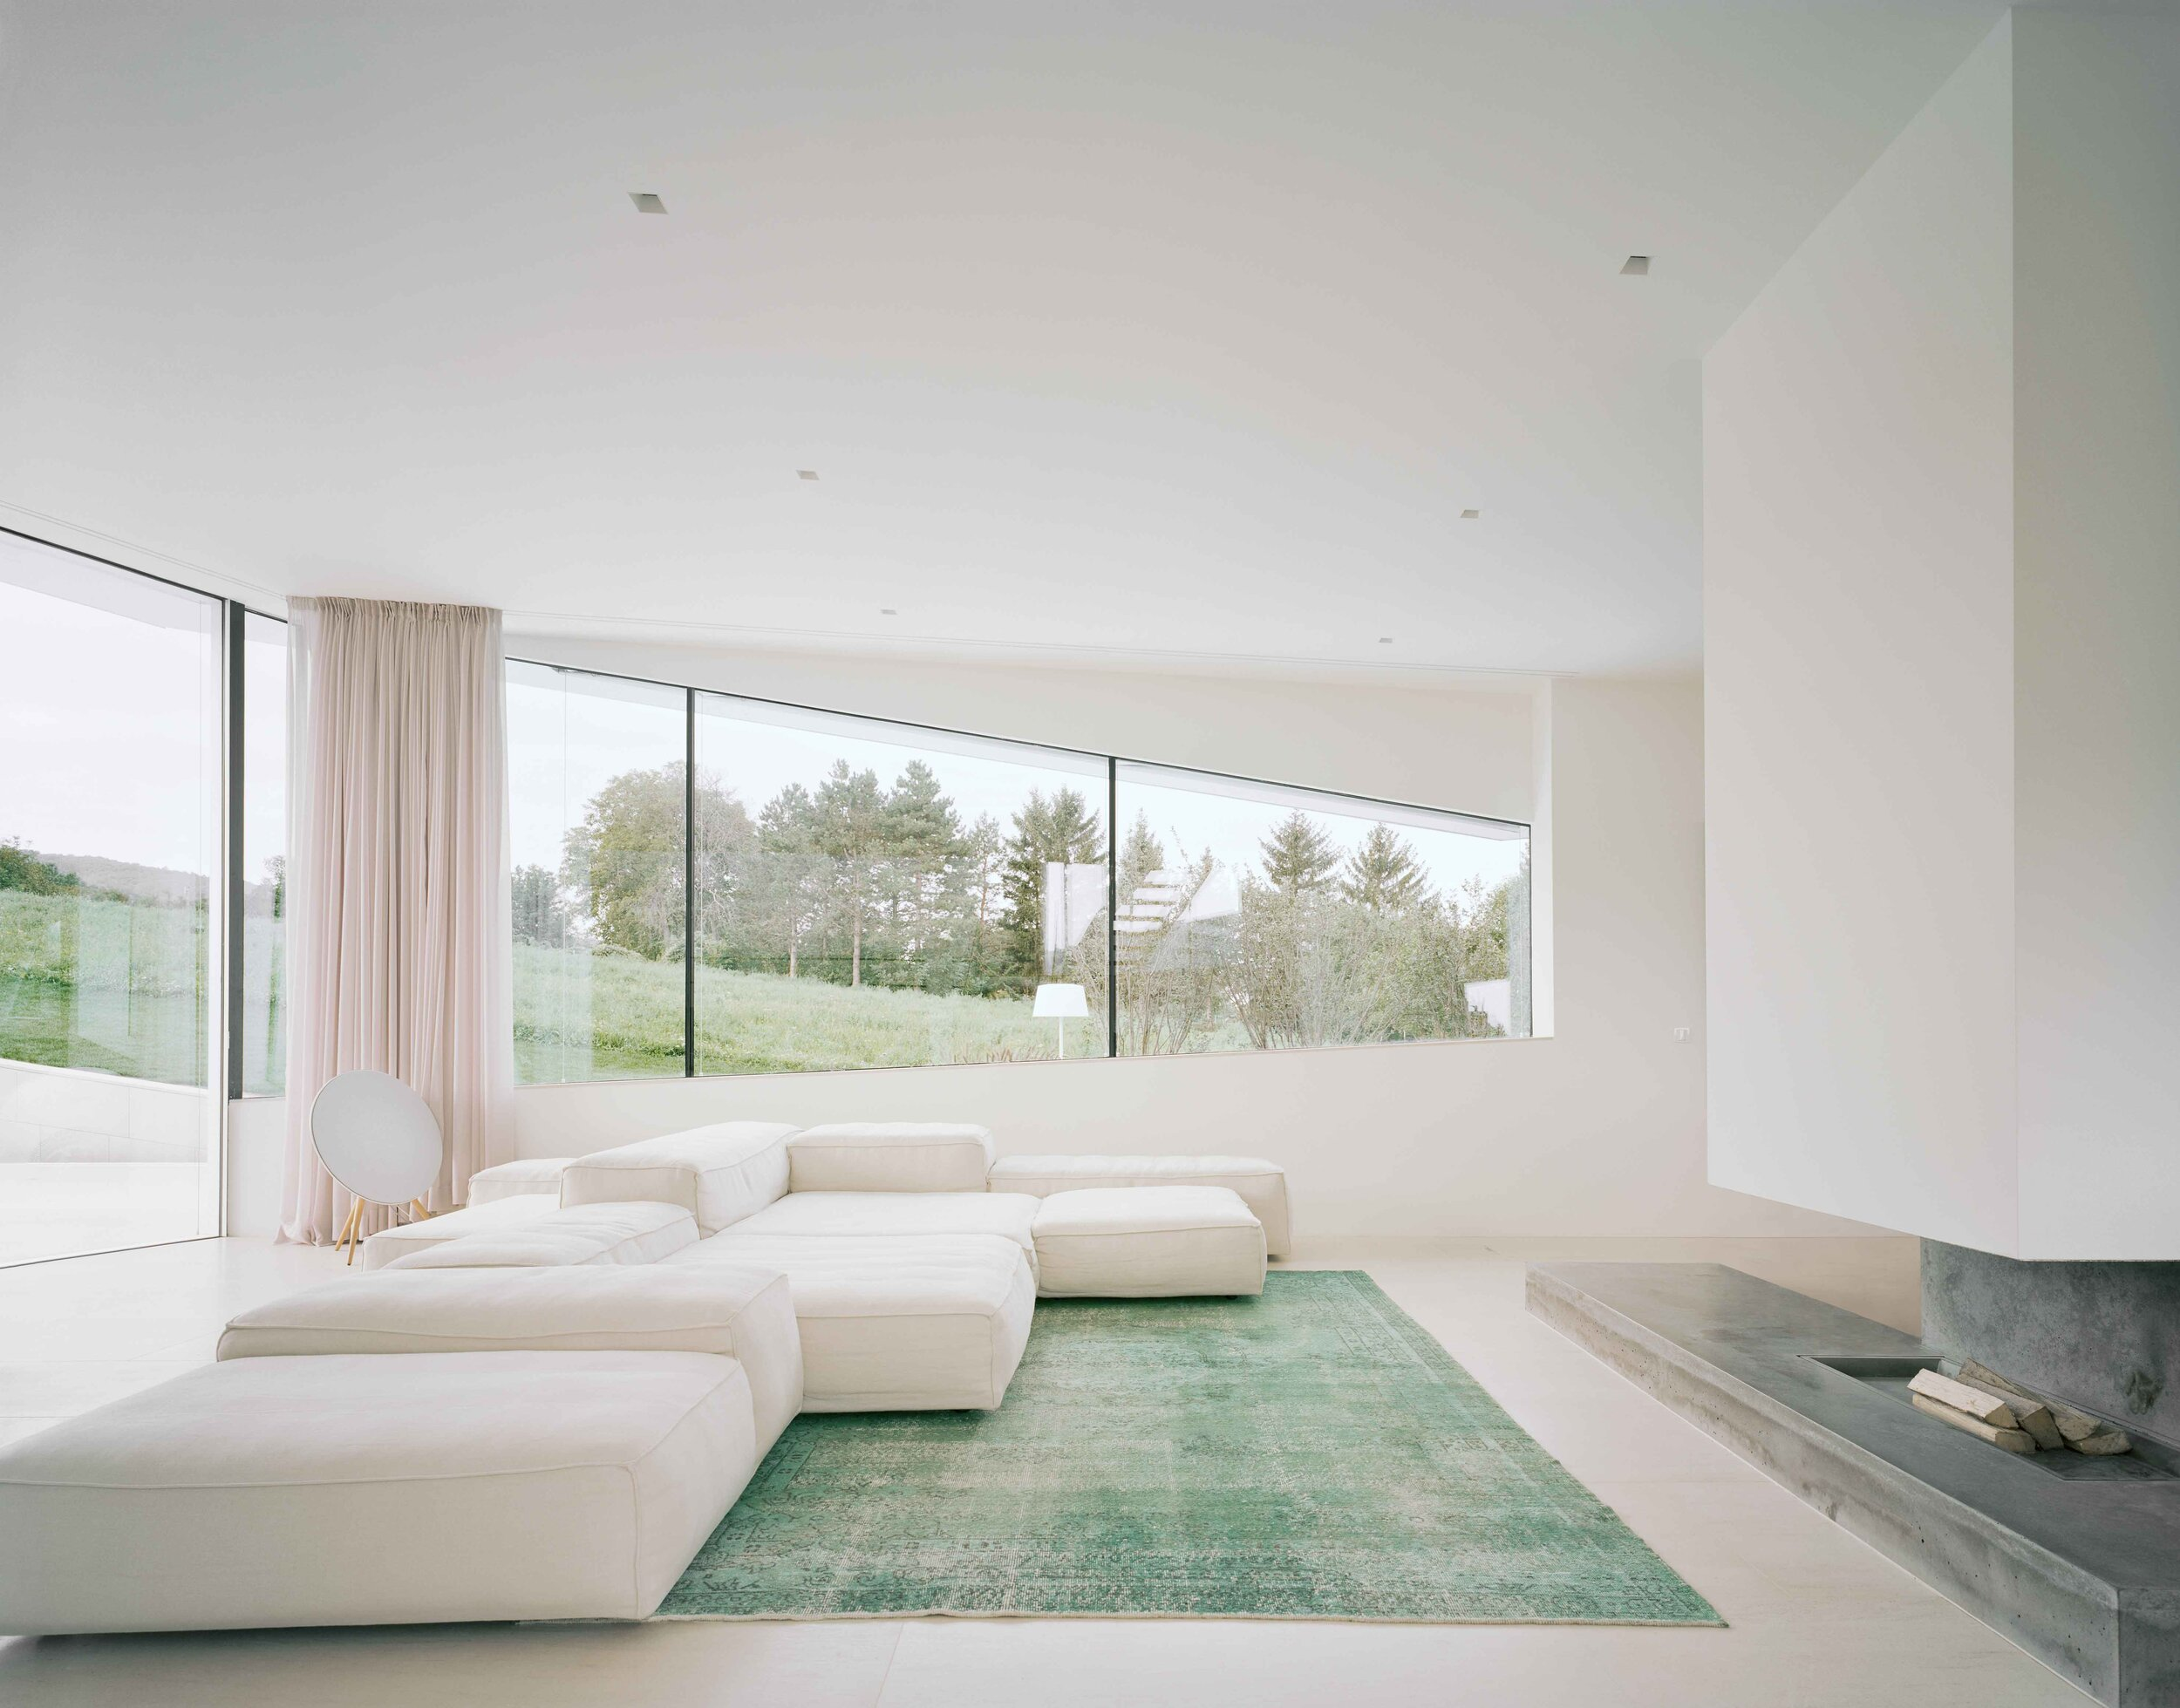 Living space and nature melted together - Interview with Andreas Schmitzer about Residence Freundorf